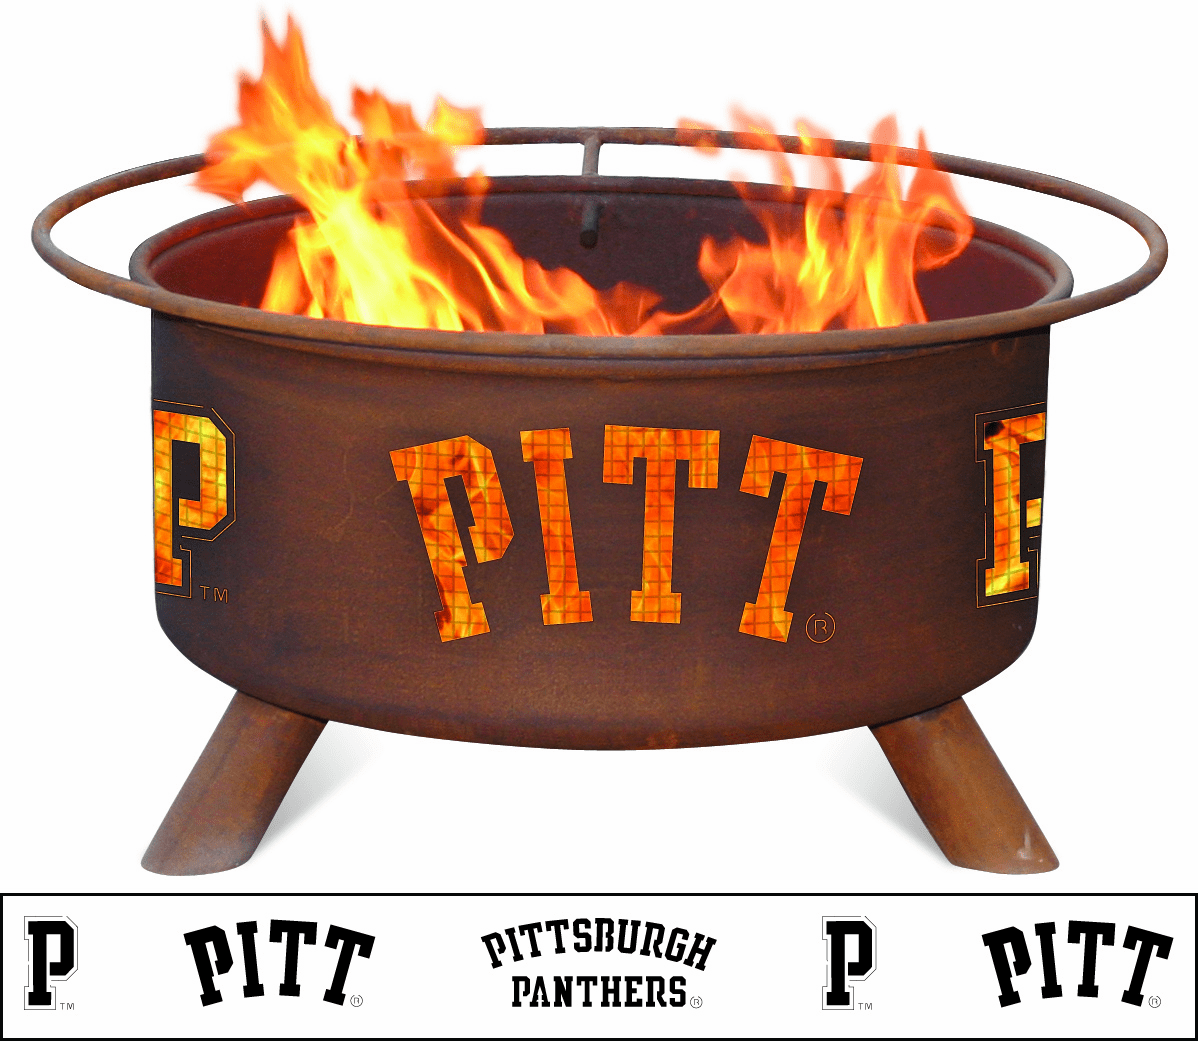 University of Pittsburgh Fire Pit - Pitt Panthers Logo Fire Ring